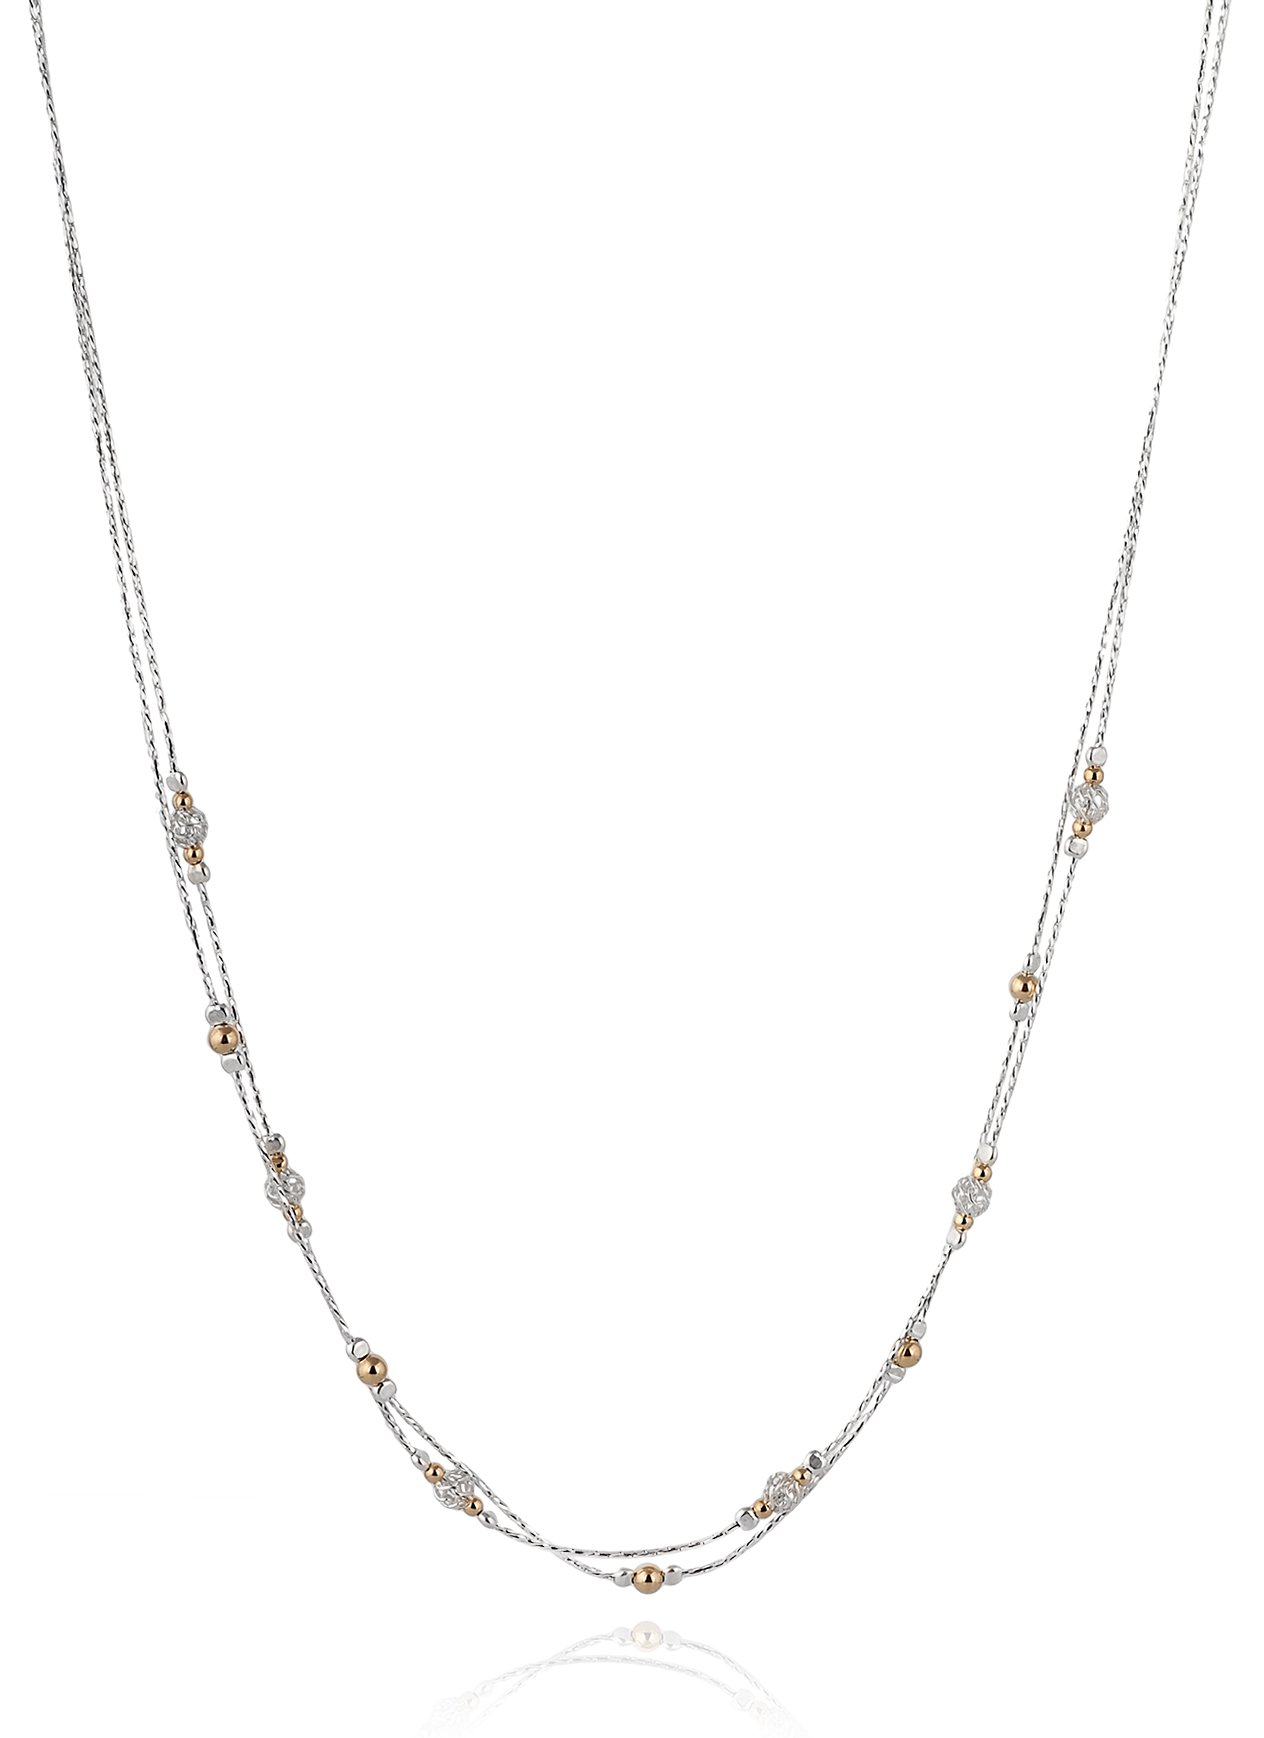 Stera Jewelry Double Strand Sterling Silver Necklace with 14k Gold Filled & Wire Net Bead Stations